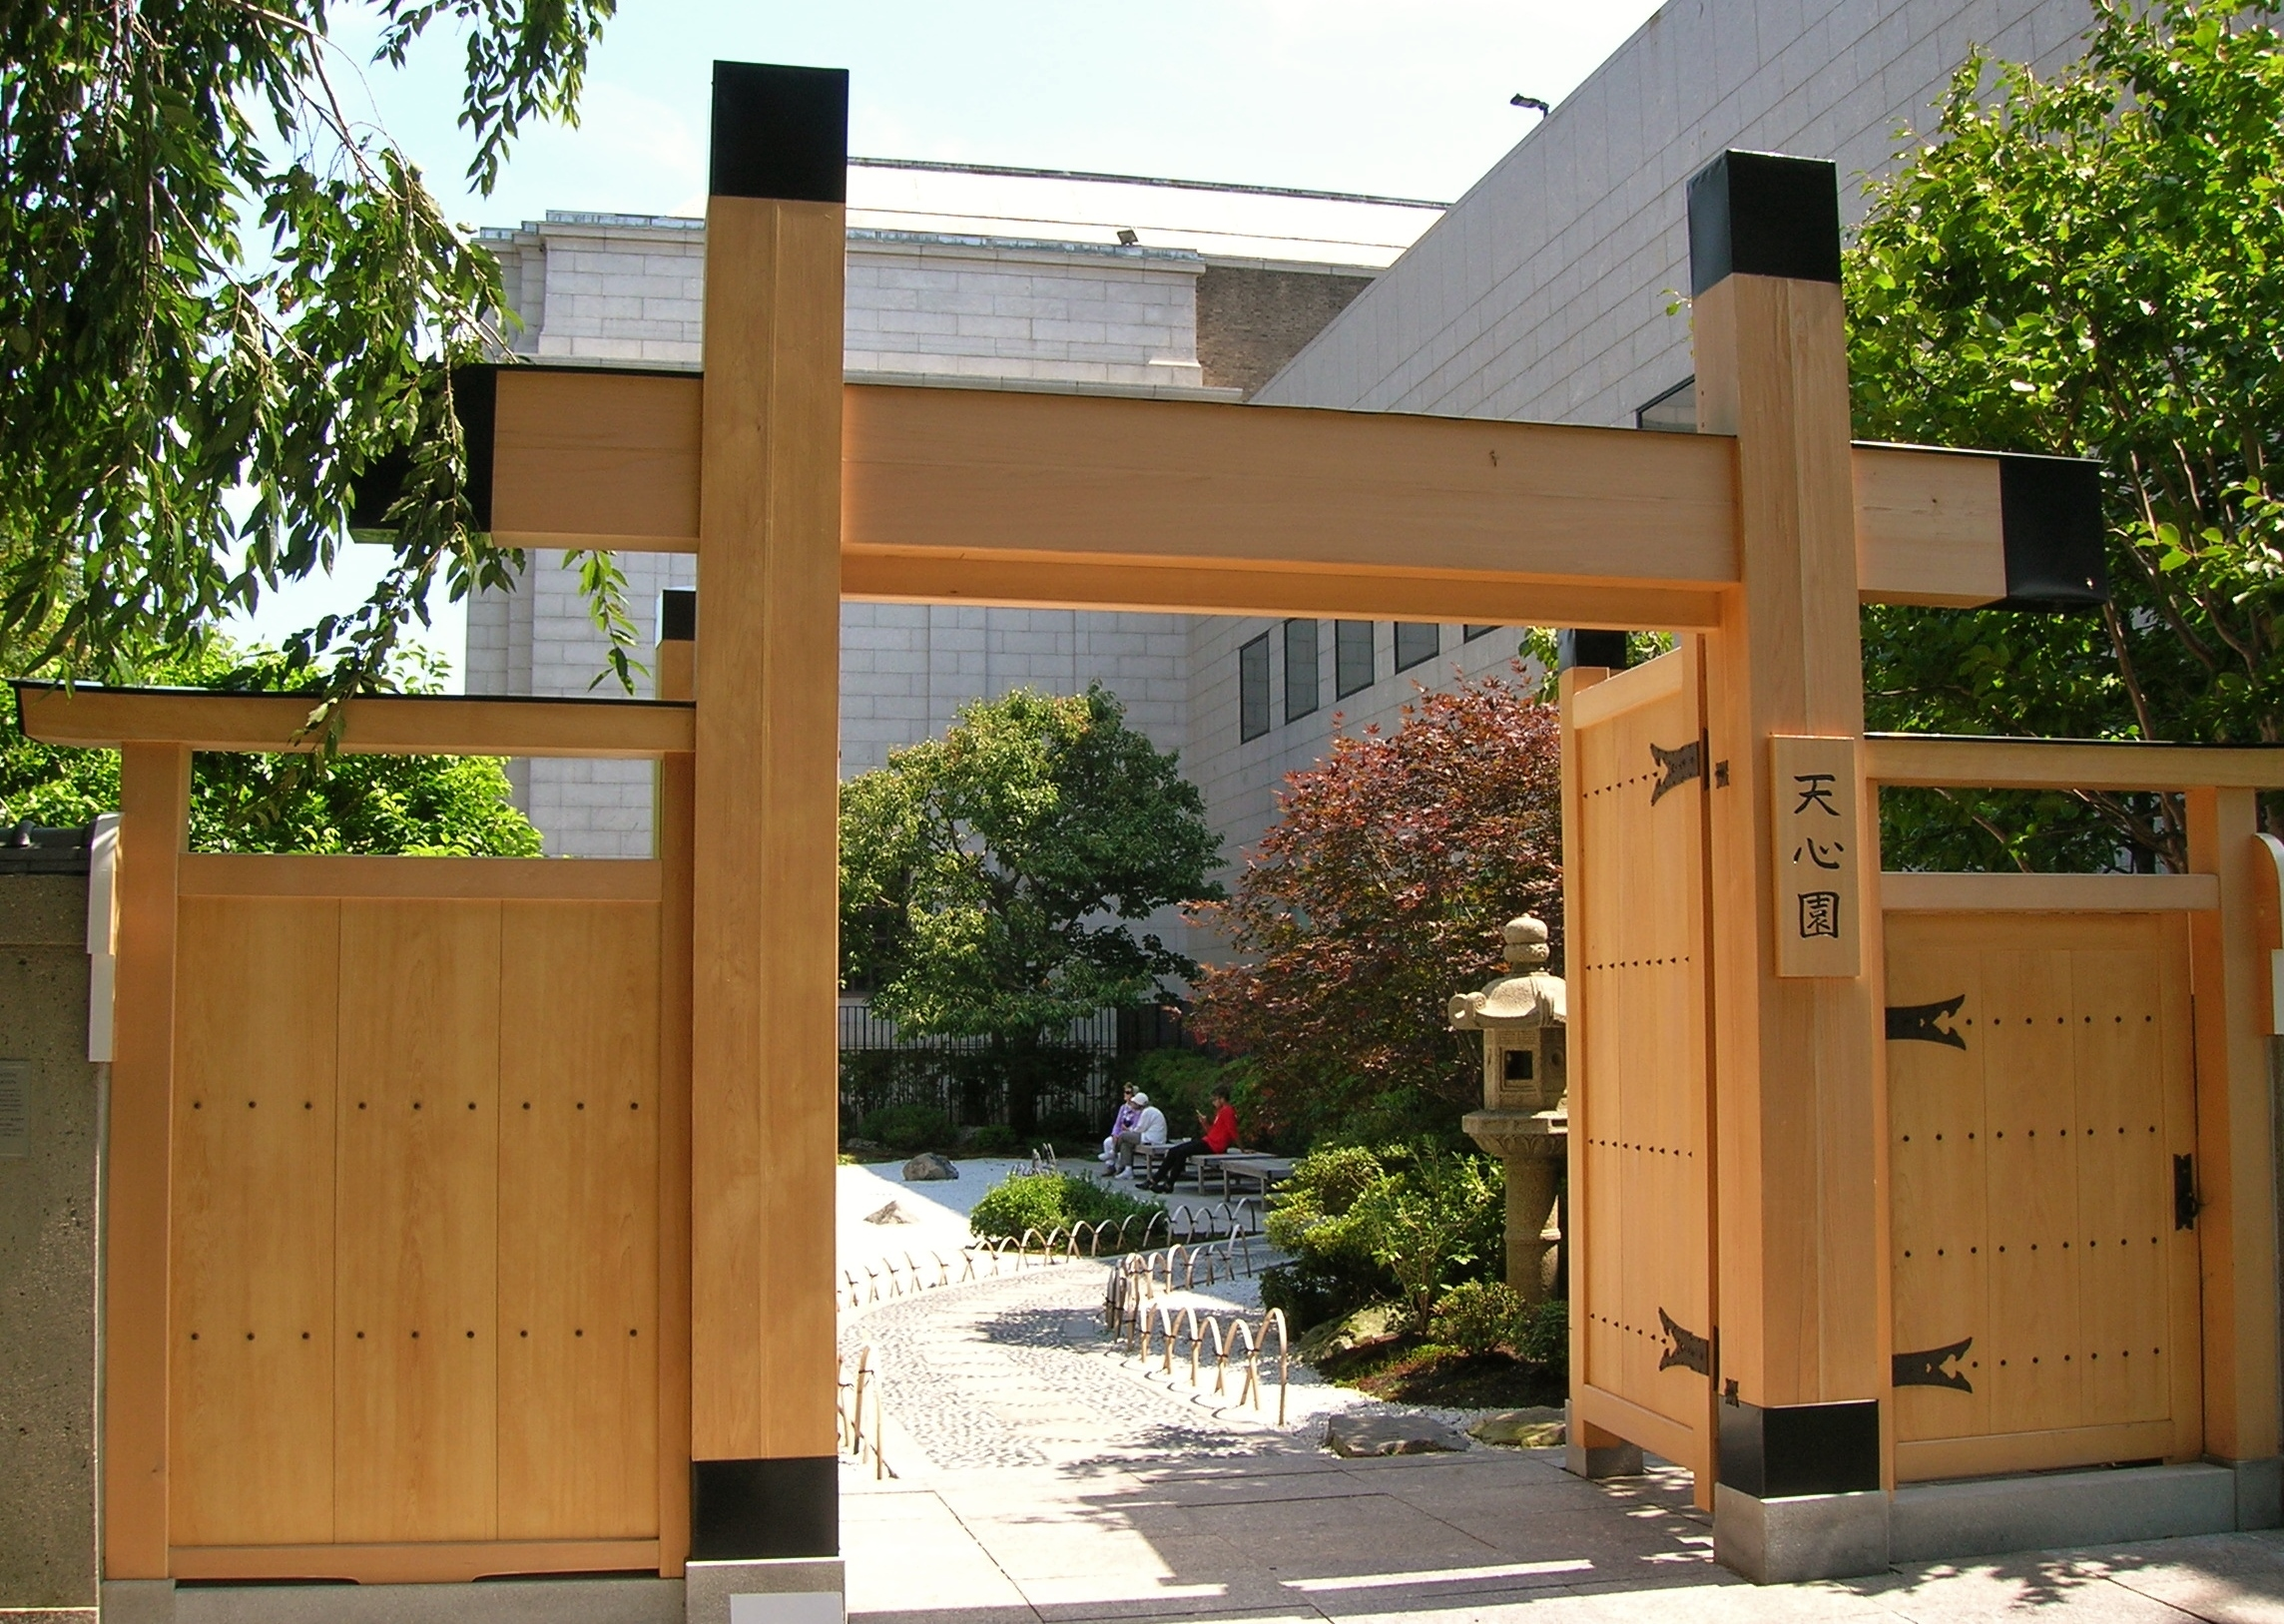 File:Japanese Gate And Garden At Boston Museum Of Fine Arts   August 15,